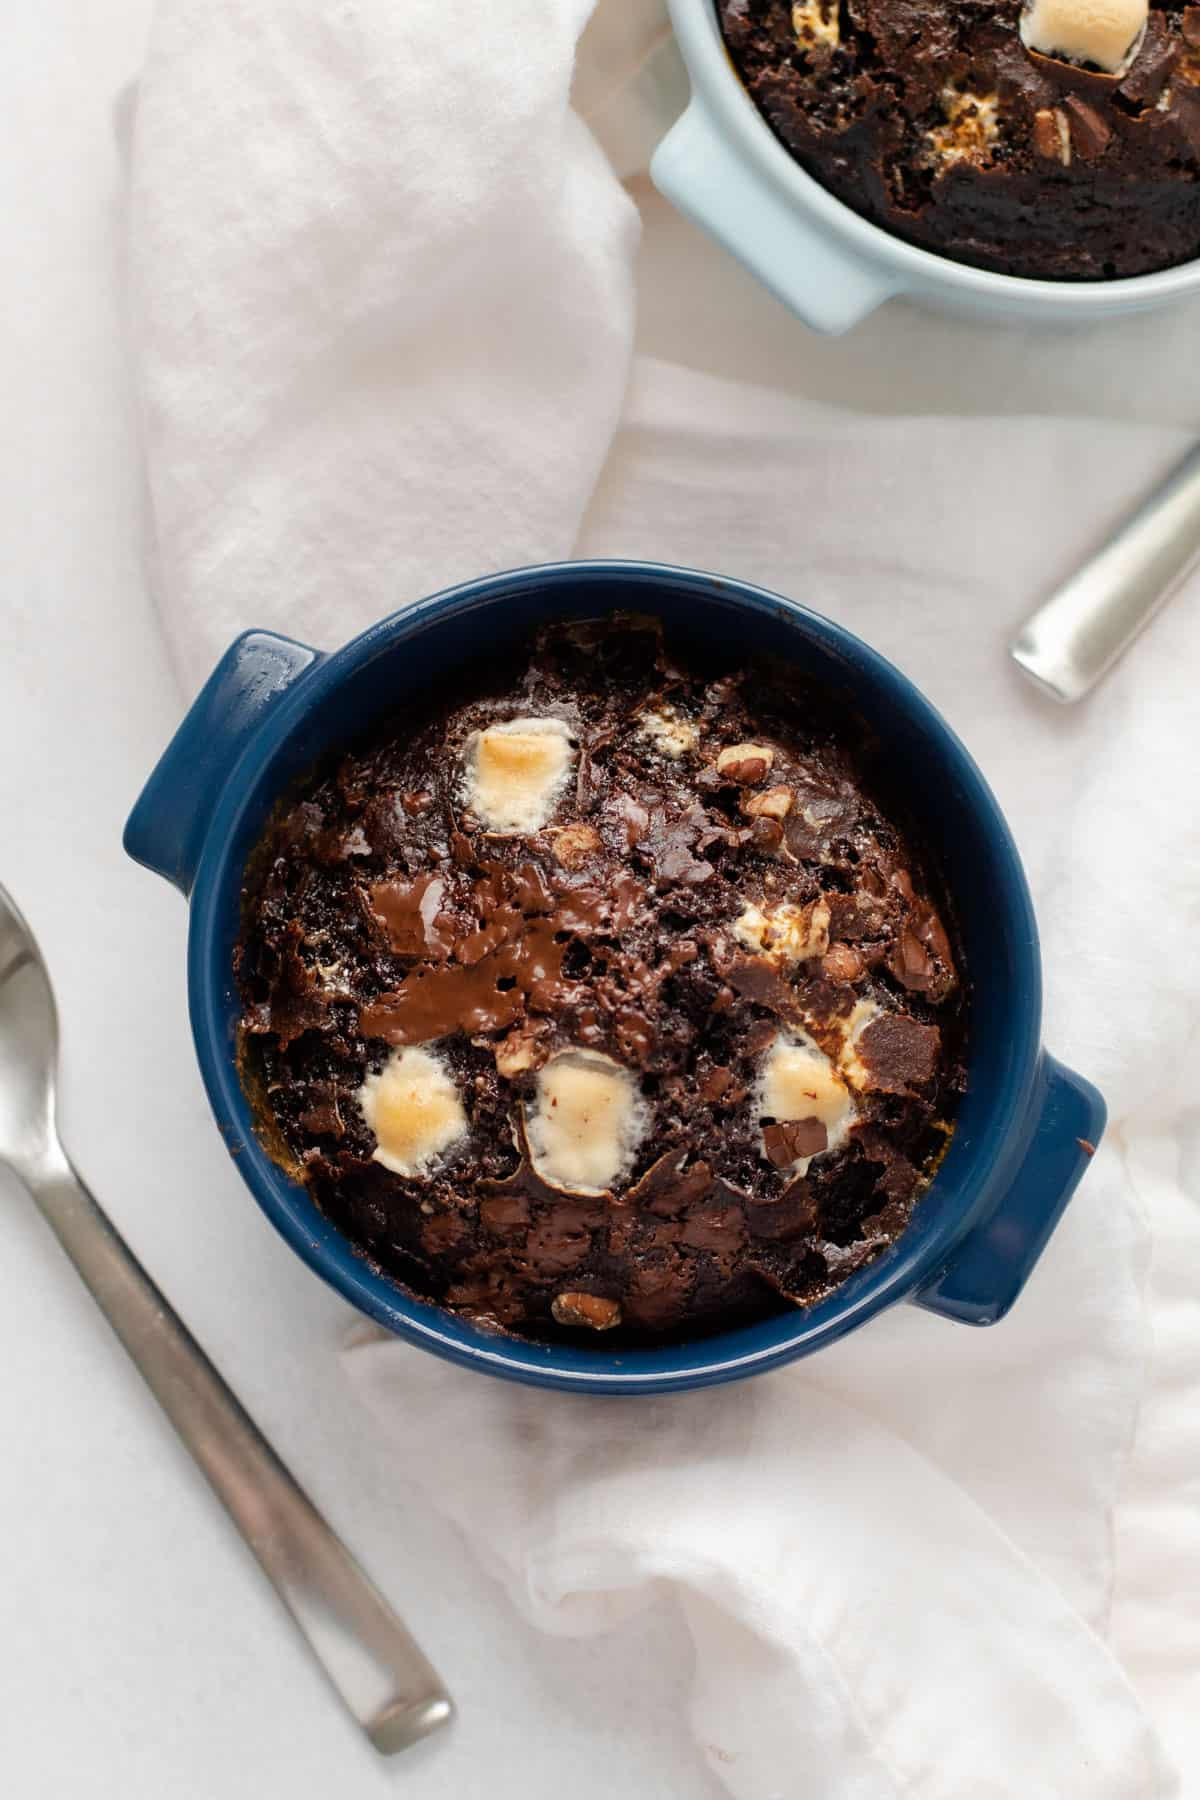 Baked Chocolate Oats with marshmallows and nuts.